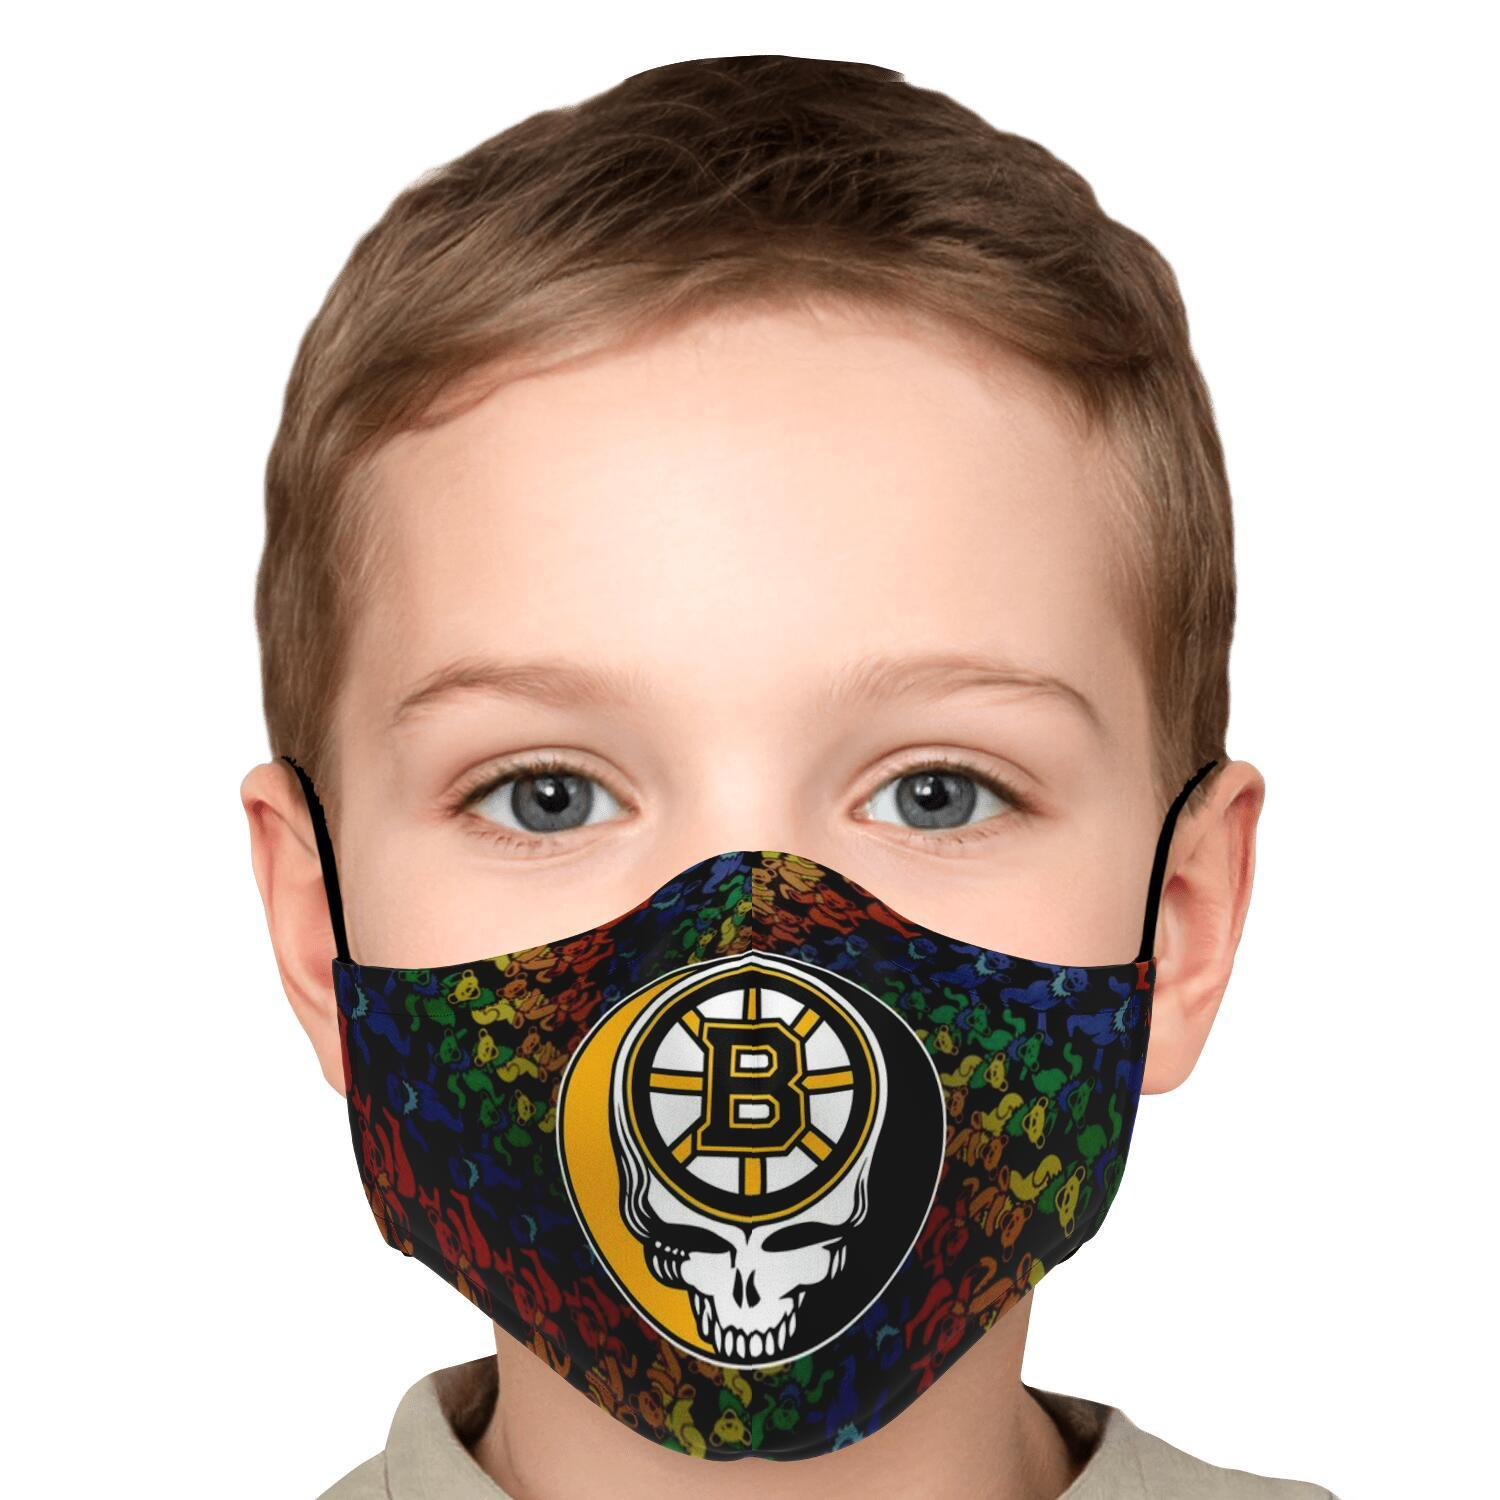 Steal Your Face Grateful Dead Boston Bruins Face Mask 5